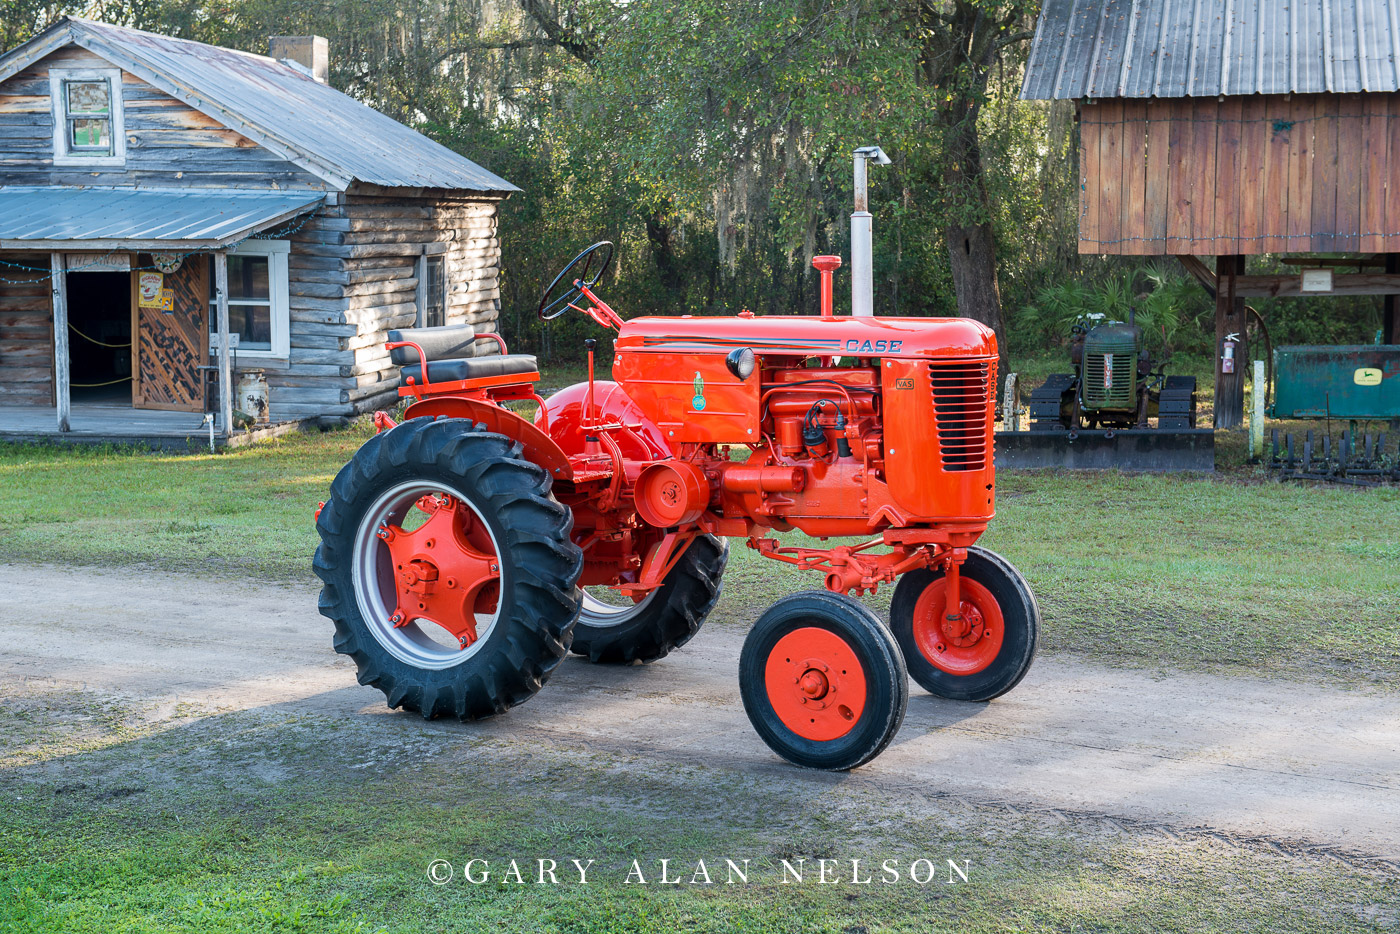 vintage tractors, antique tractors, Case, photo